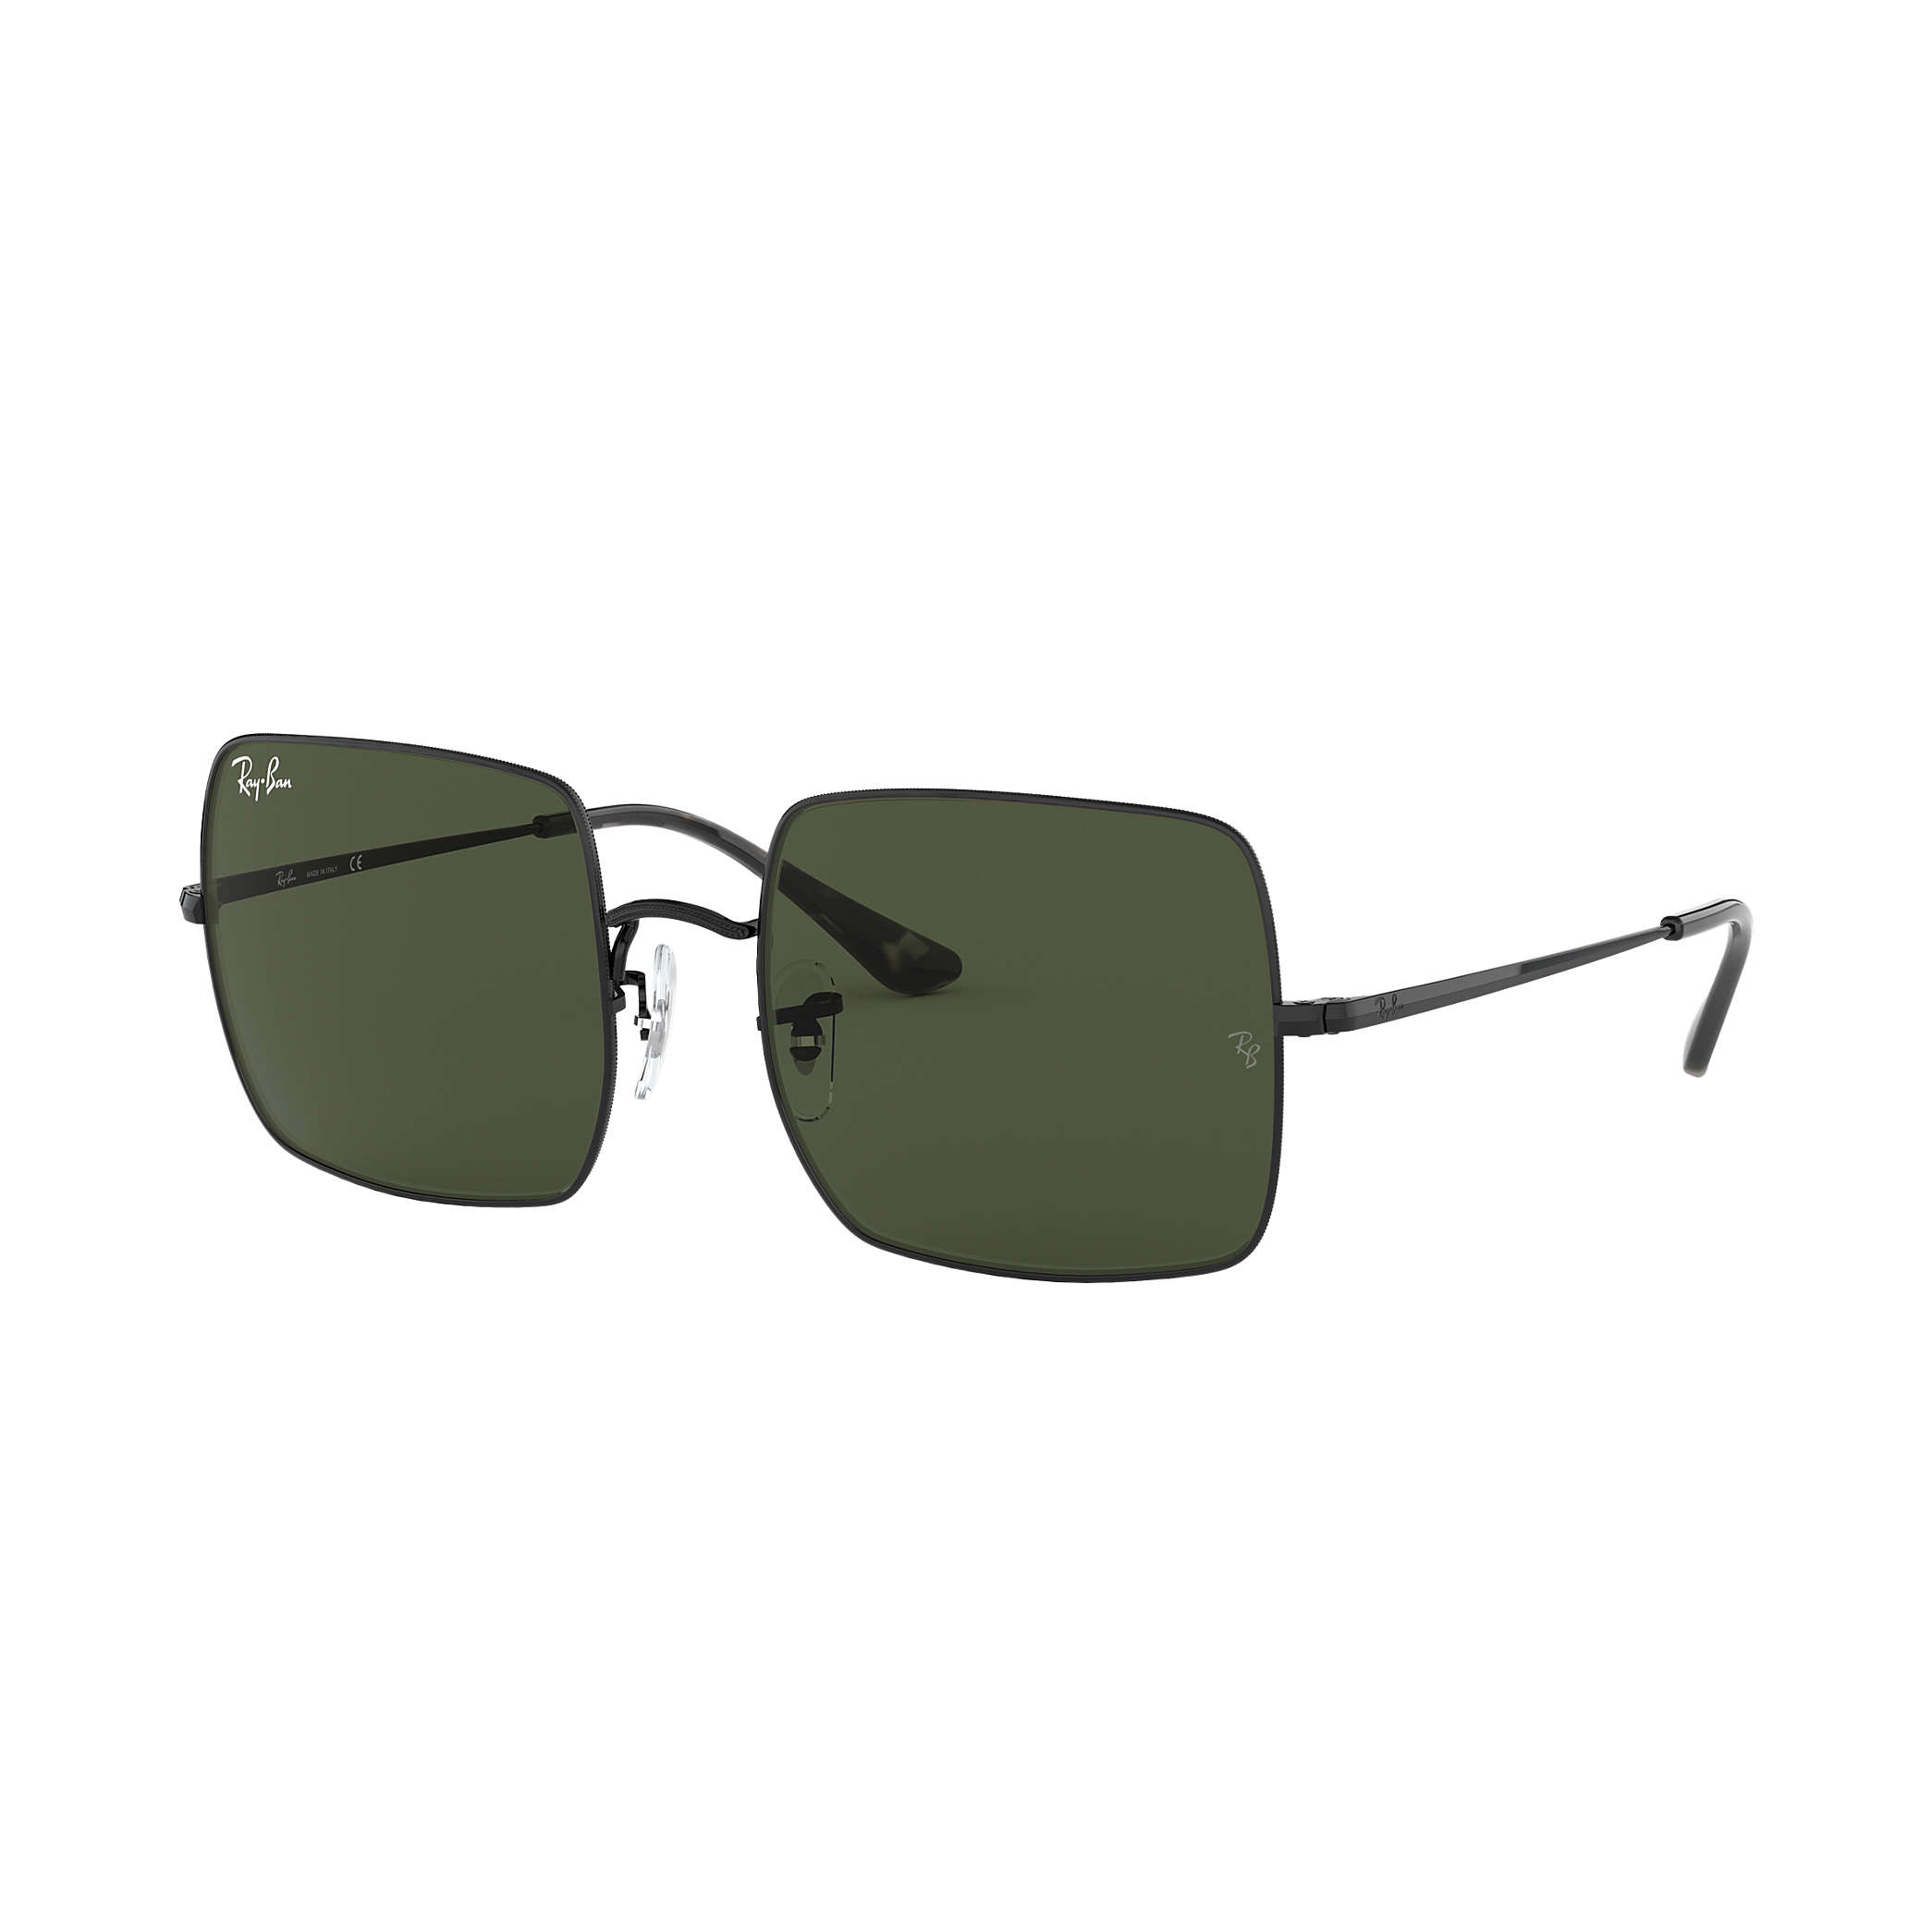 RAY BAN 1971 914831 54  SQUARE CLASSIC